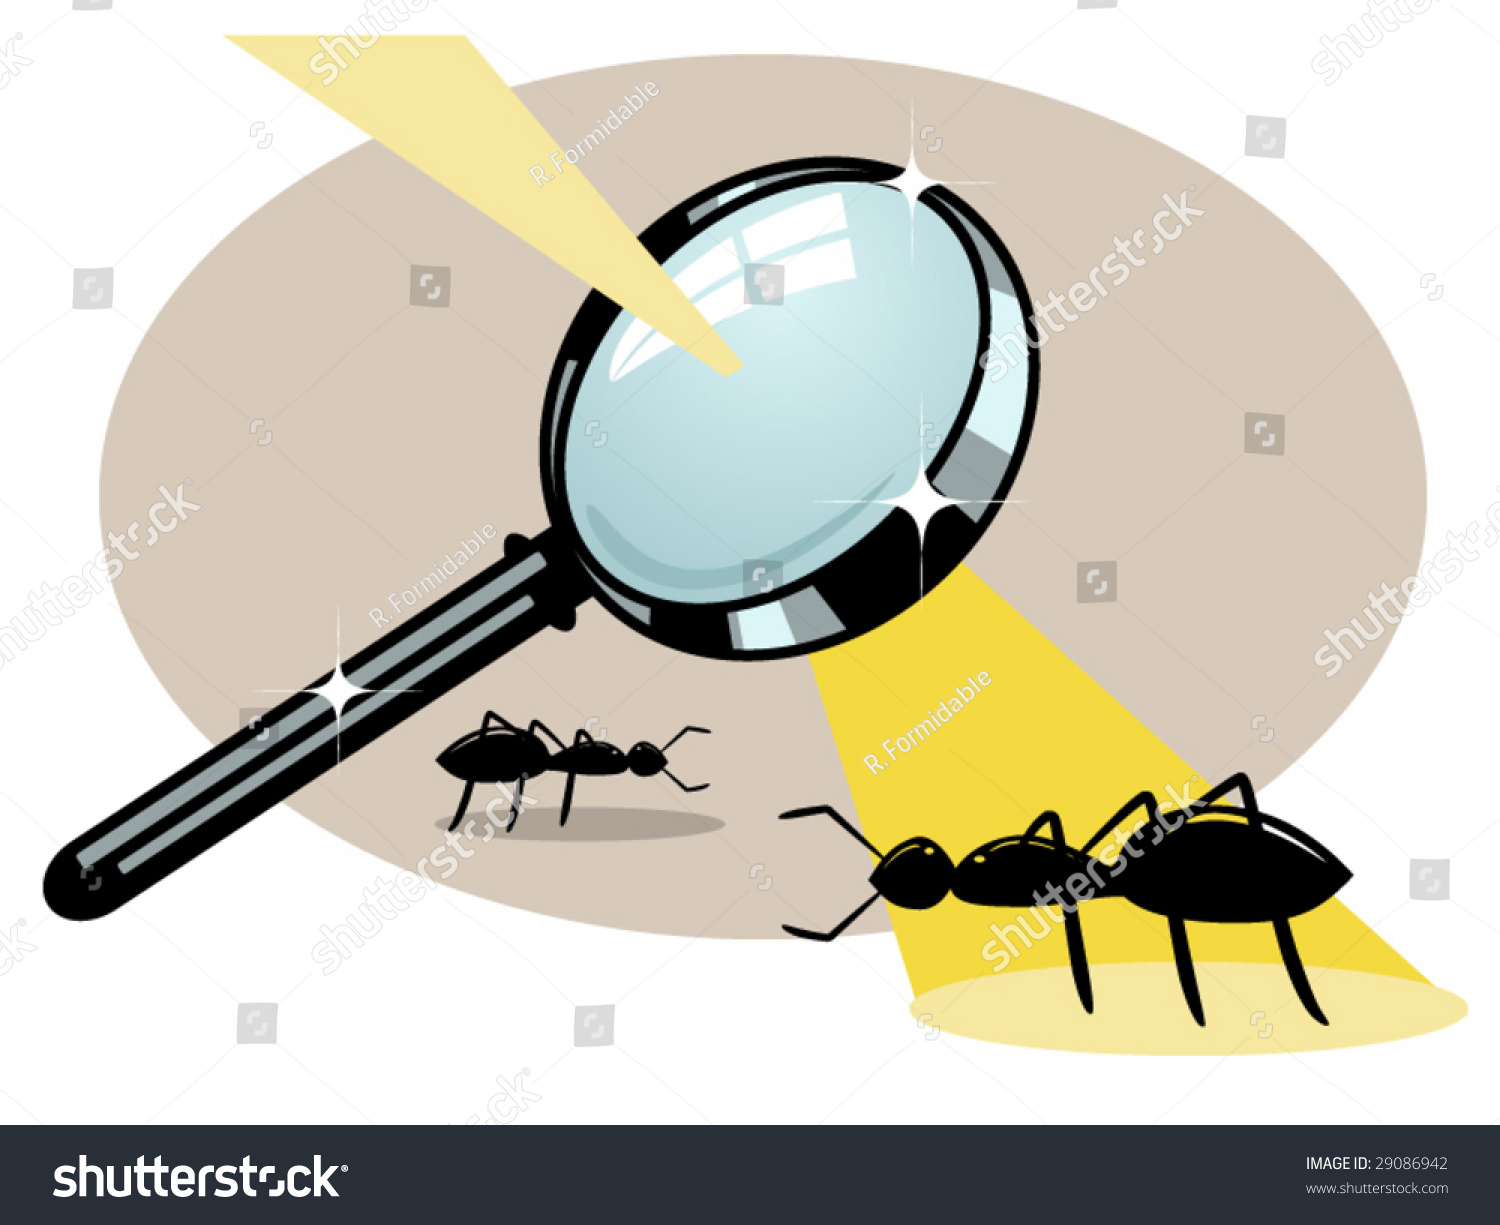 Image result for frying an ant with magnifying glass